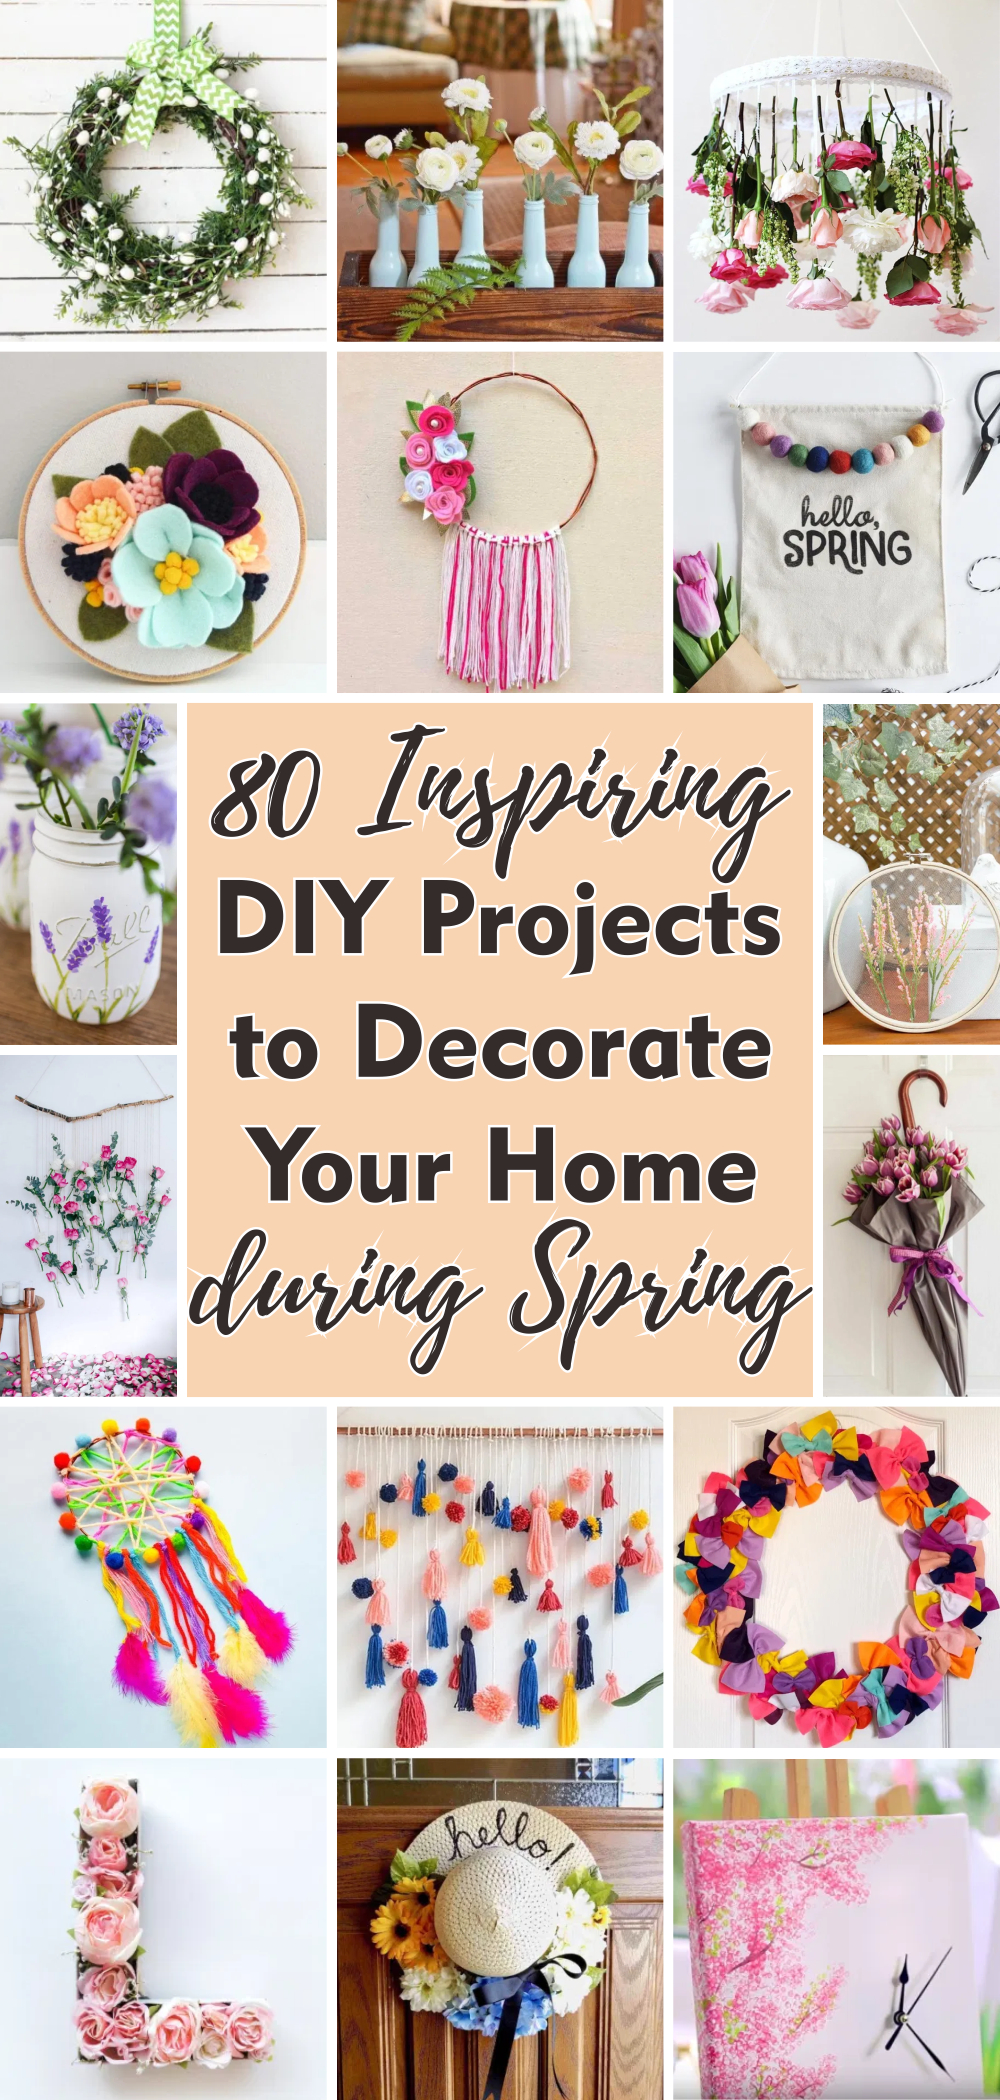 80 inspiring diy projects to decorate your home during spring 1